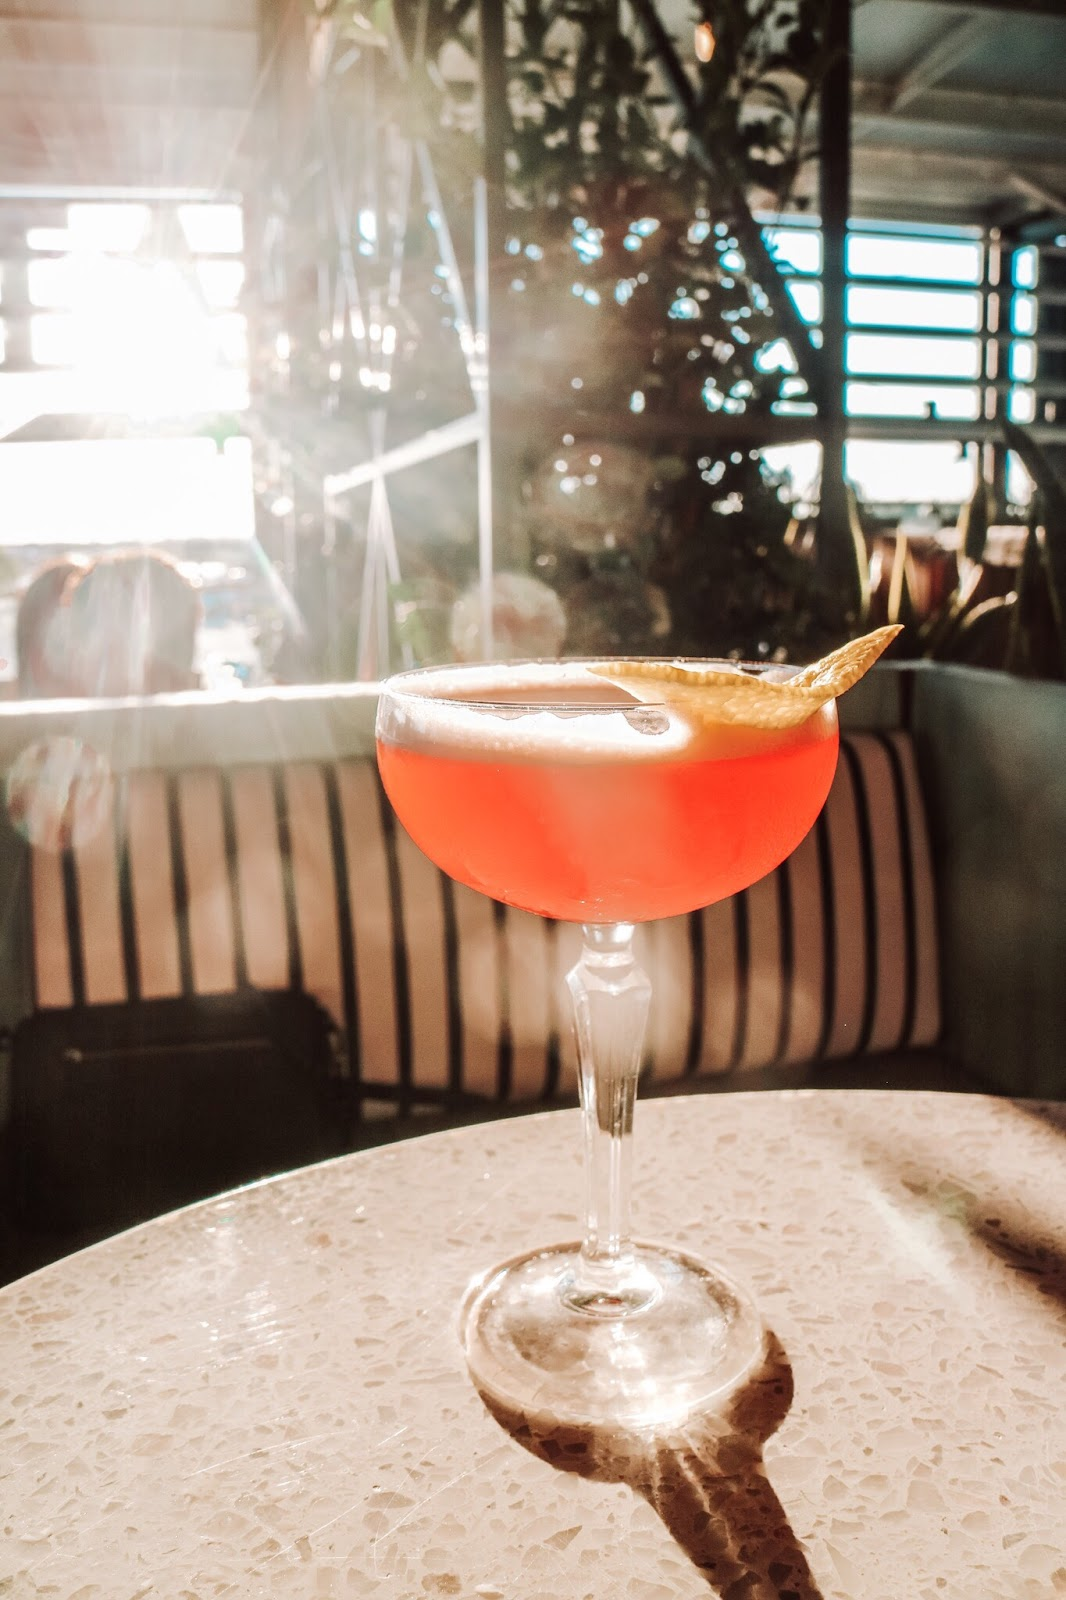 The Oobee Doo drink at M.Bird, the new rooftop bar on top of Armature Works in Tampa, Florida